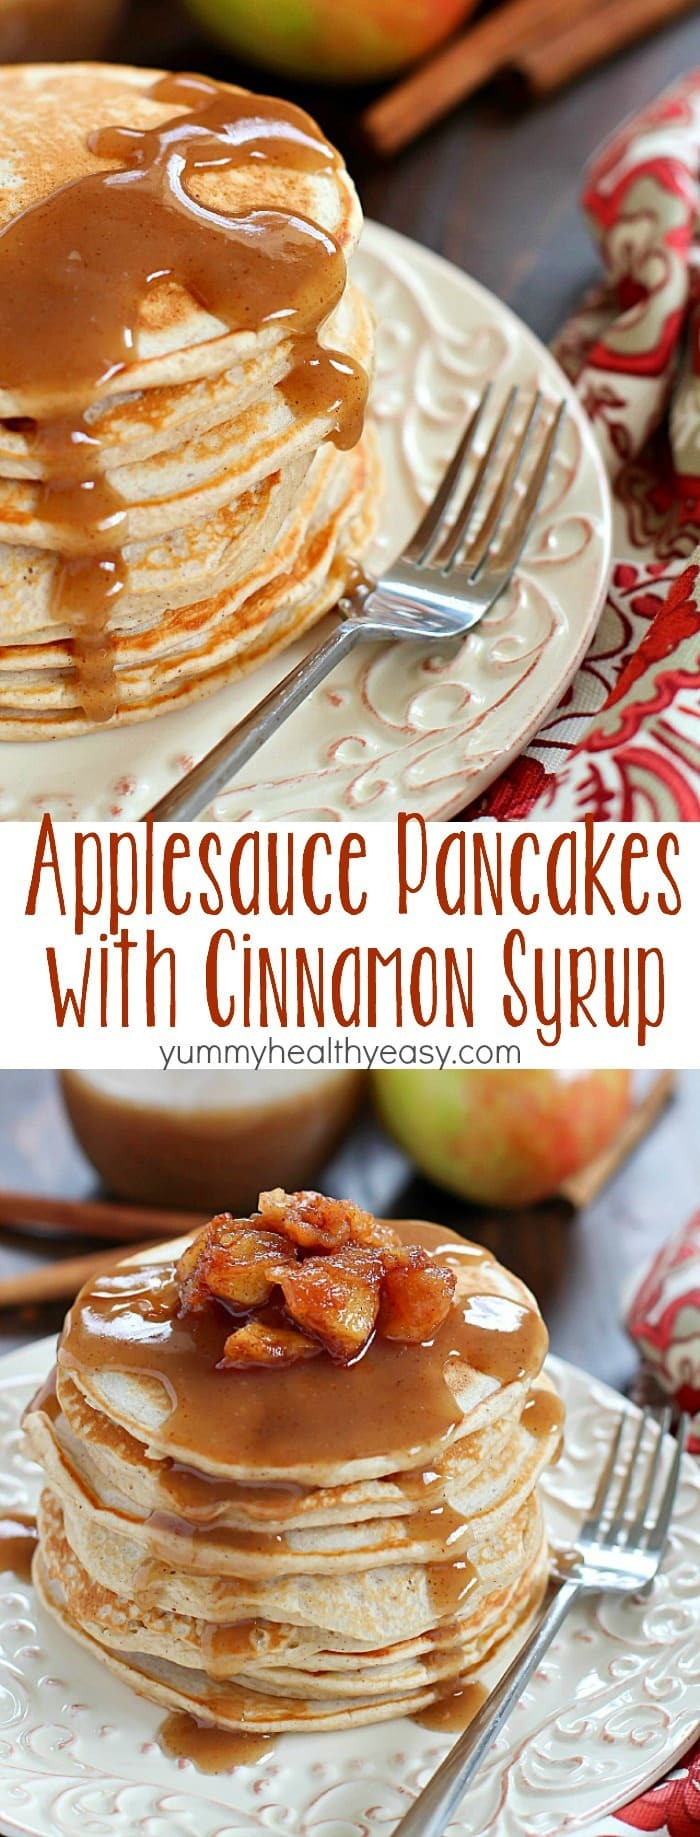 Are Pancakes Healthy  Applesauce Pancakes with Cinnamon Syrup Yummy Healthy Easy